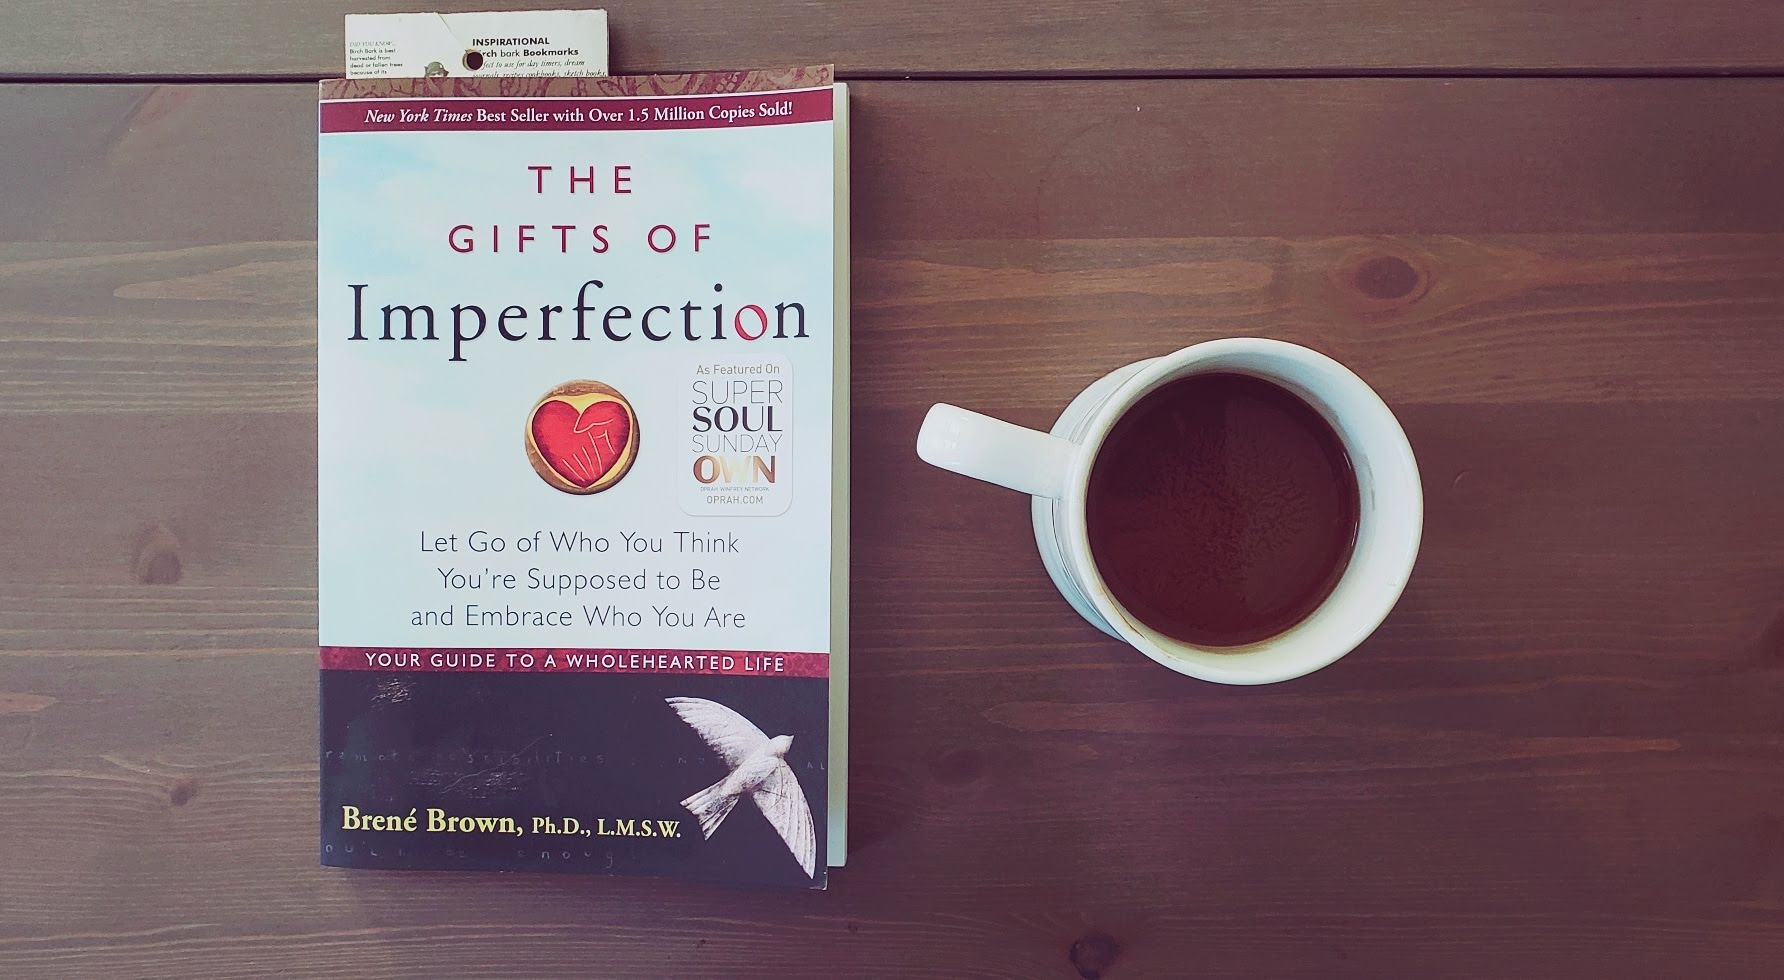 The Gifts of Imperfection  by Brené Brown.